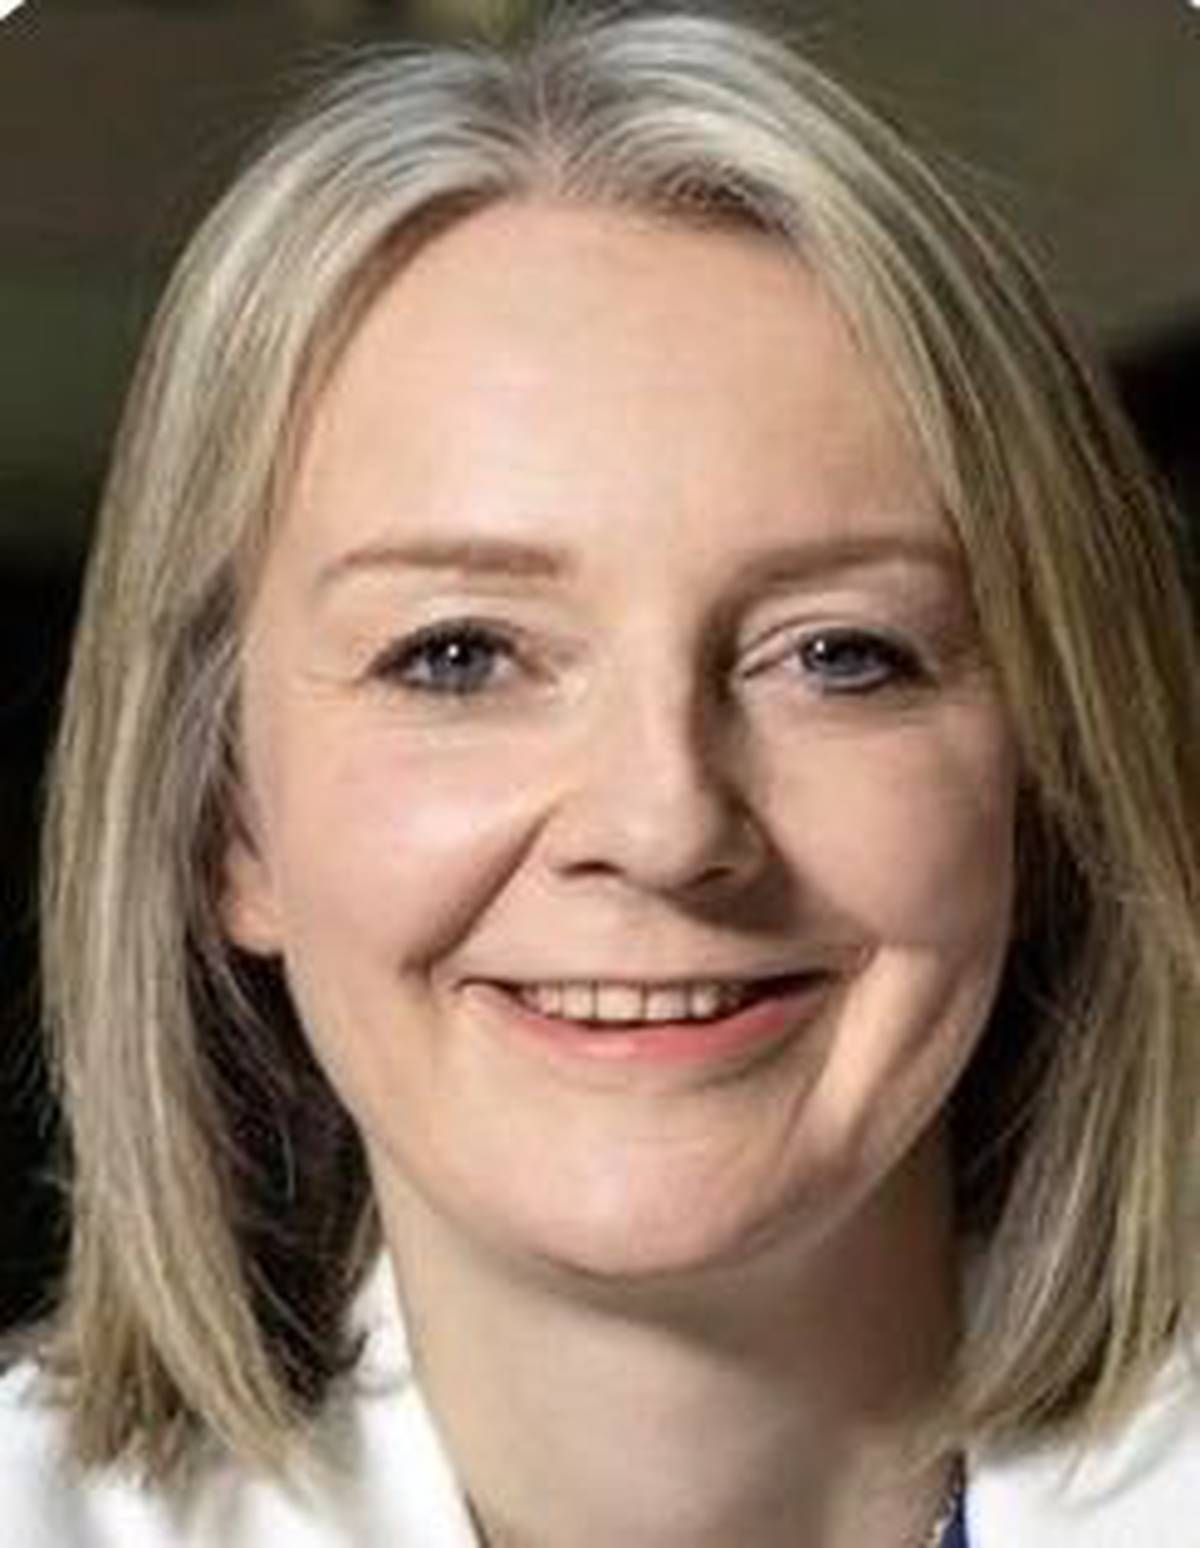 UK Trade Minister Liz Truss makes surprise visit to New Zealand for post-Brexit talks